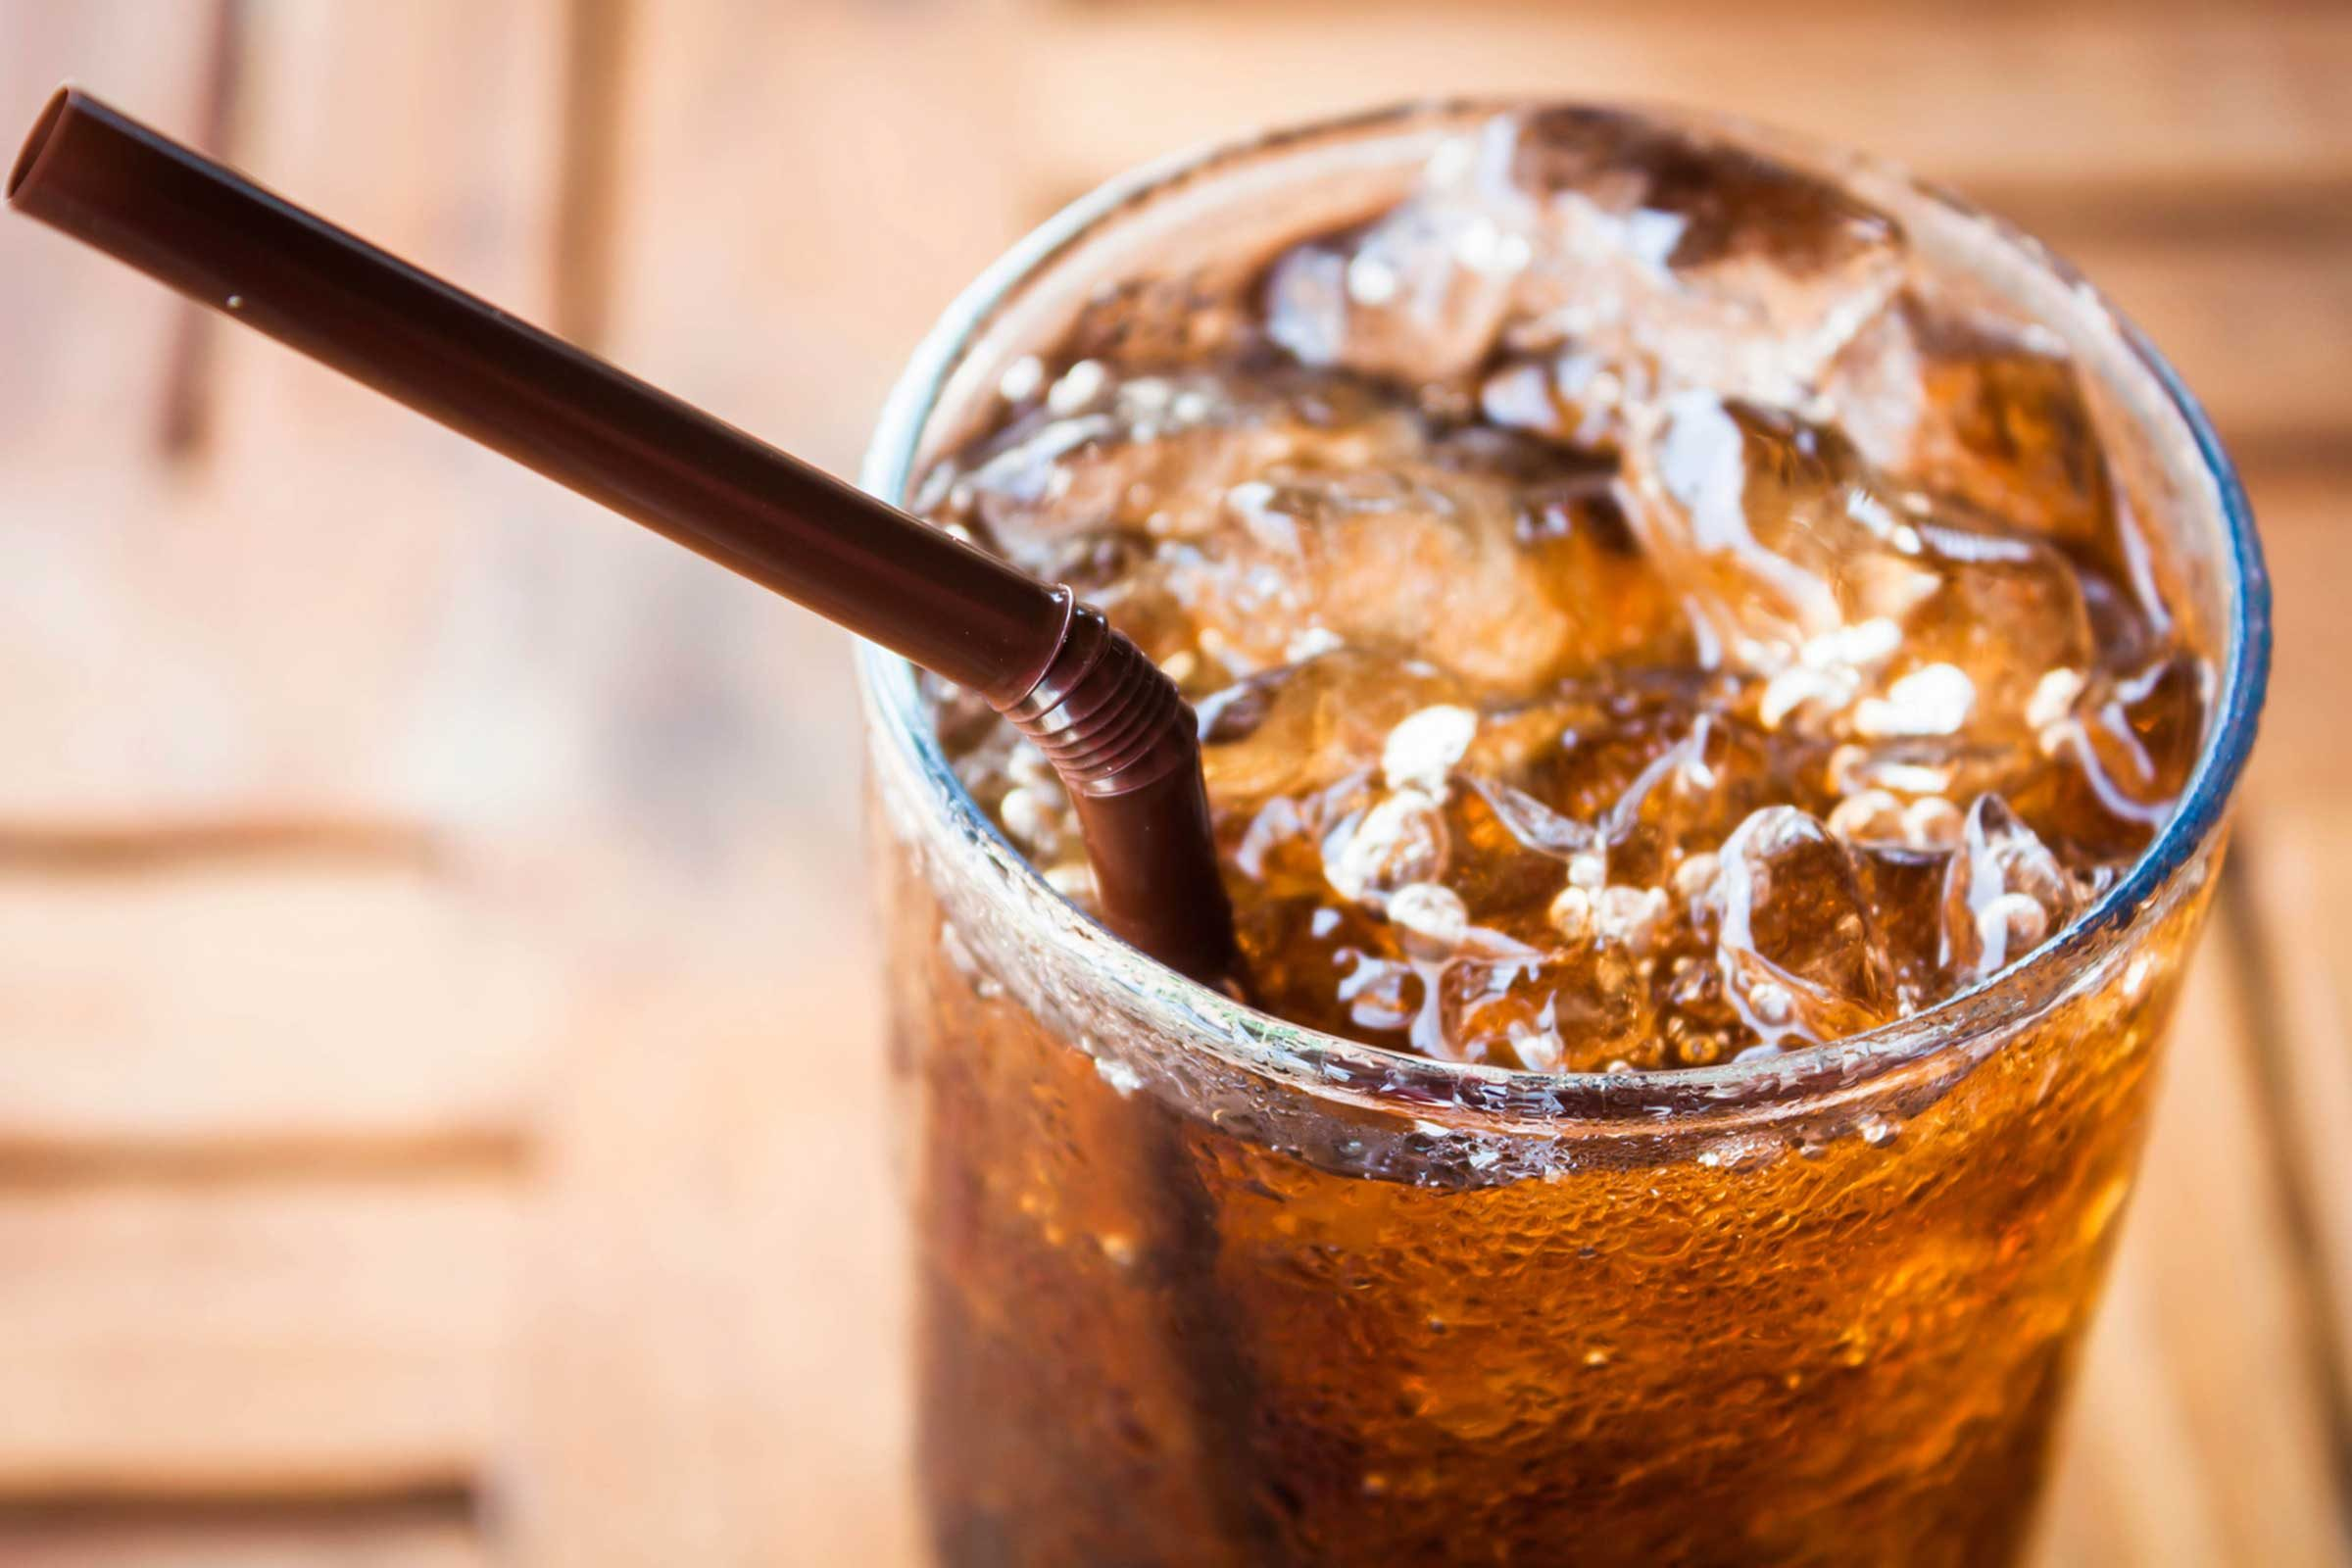 Doctors advise to exclude sausage and soda from the student's diet